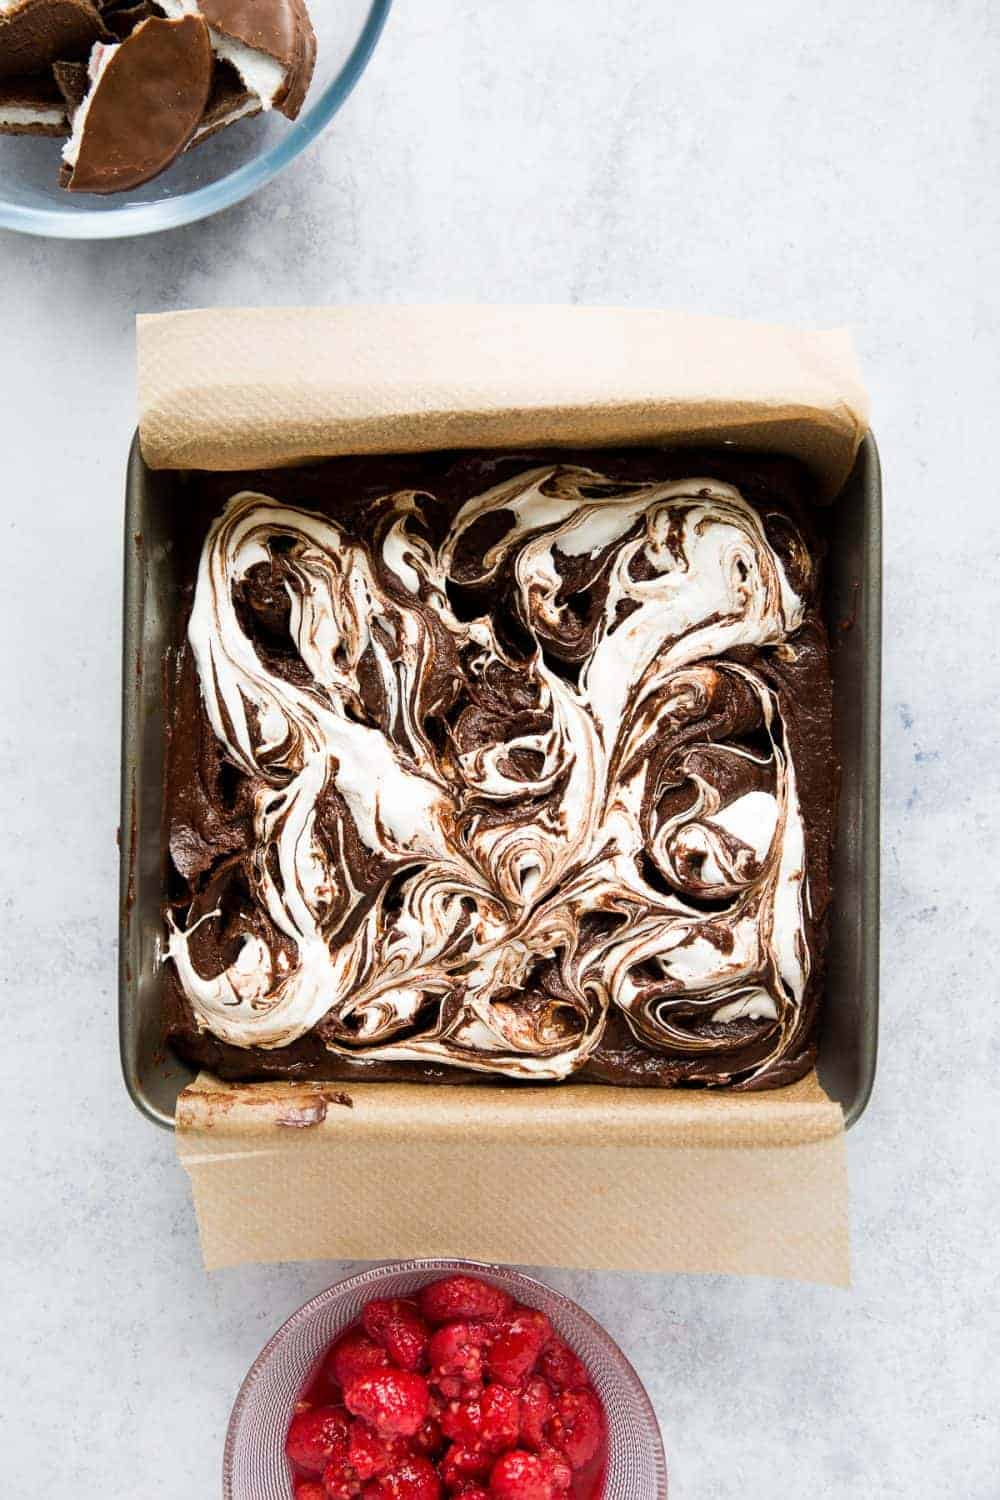 Brownie batter with marshmallow fluff swirled into it.